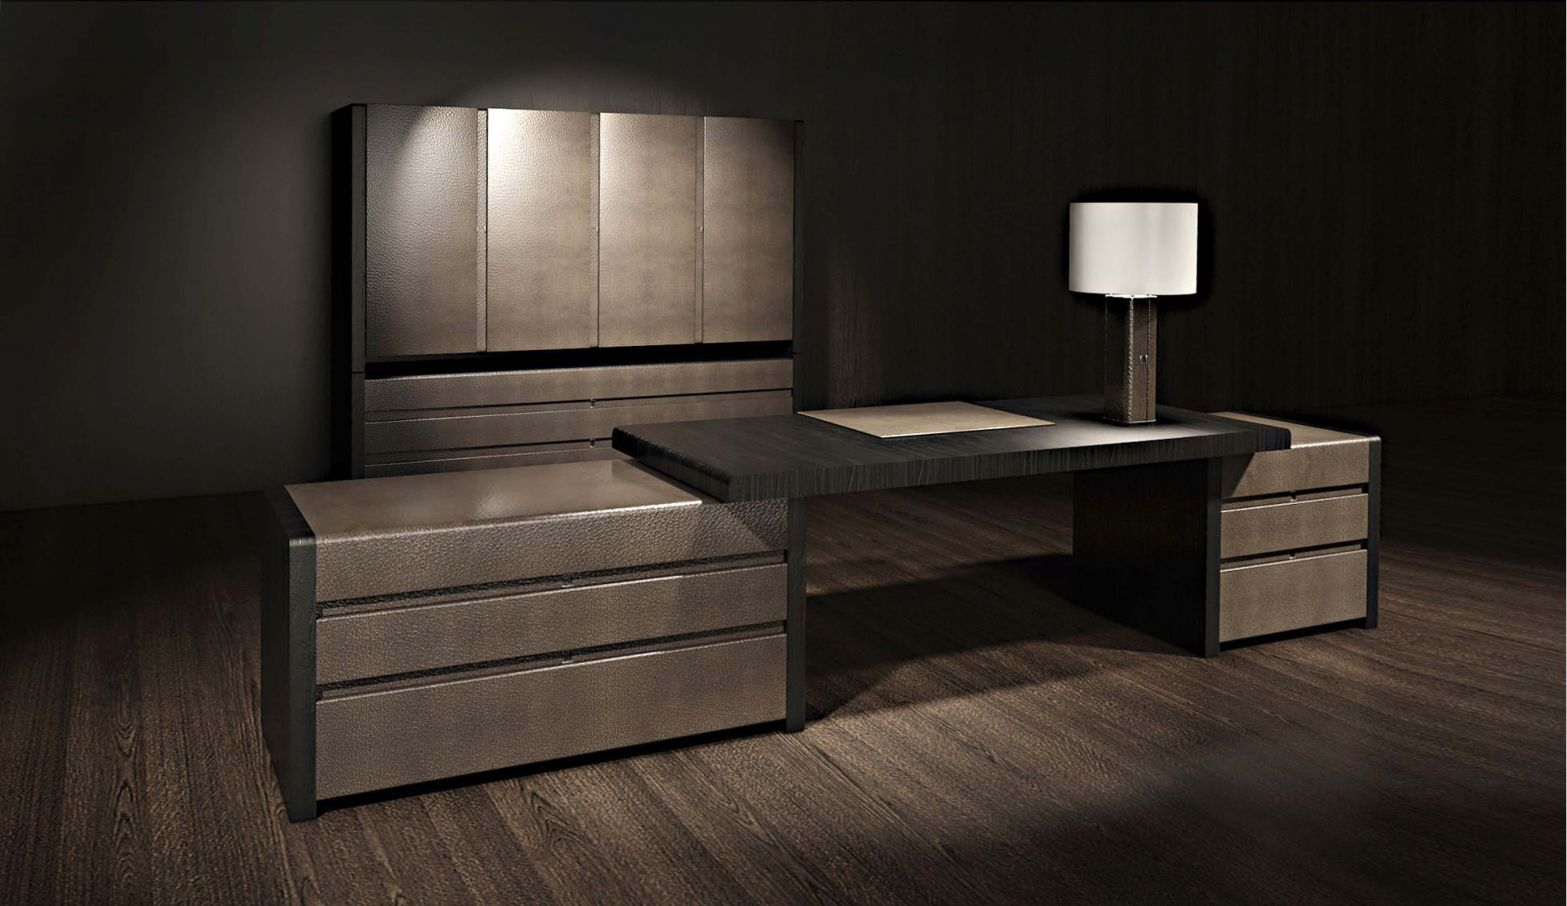 large home office desk. 2019 Leather Office Desk - Large Home Furniture Check More At Http:// T